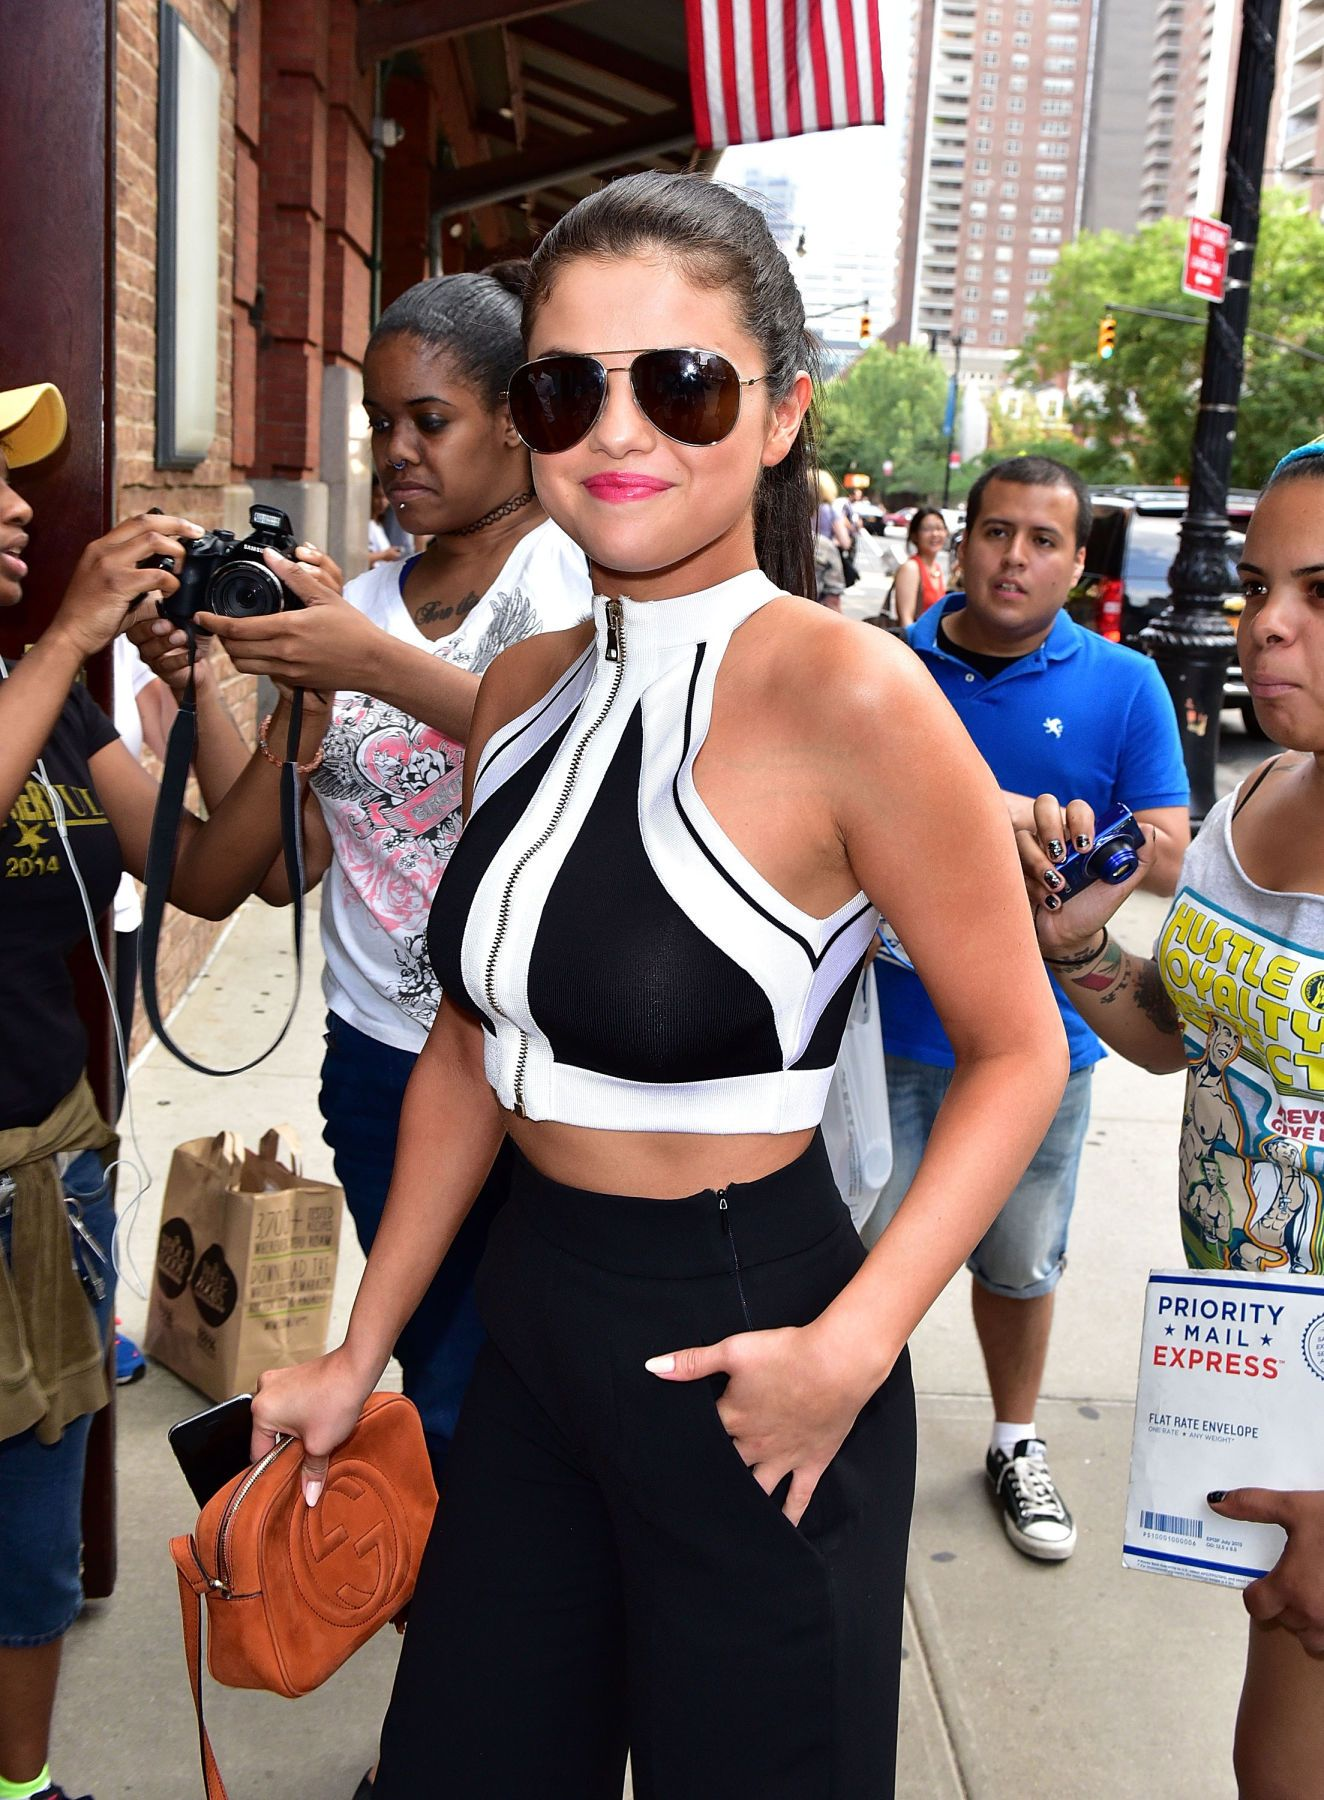 Who run the world? Selena Gomez.